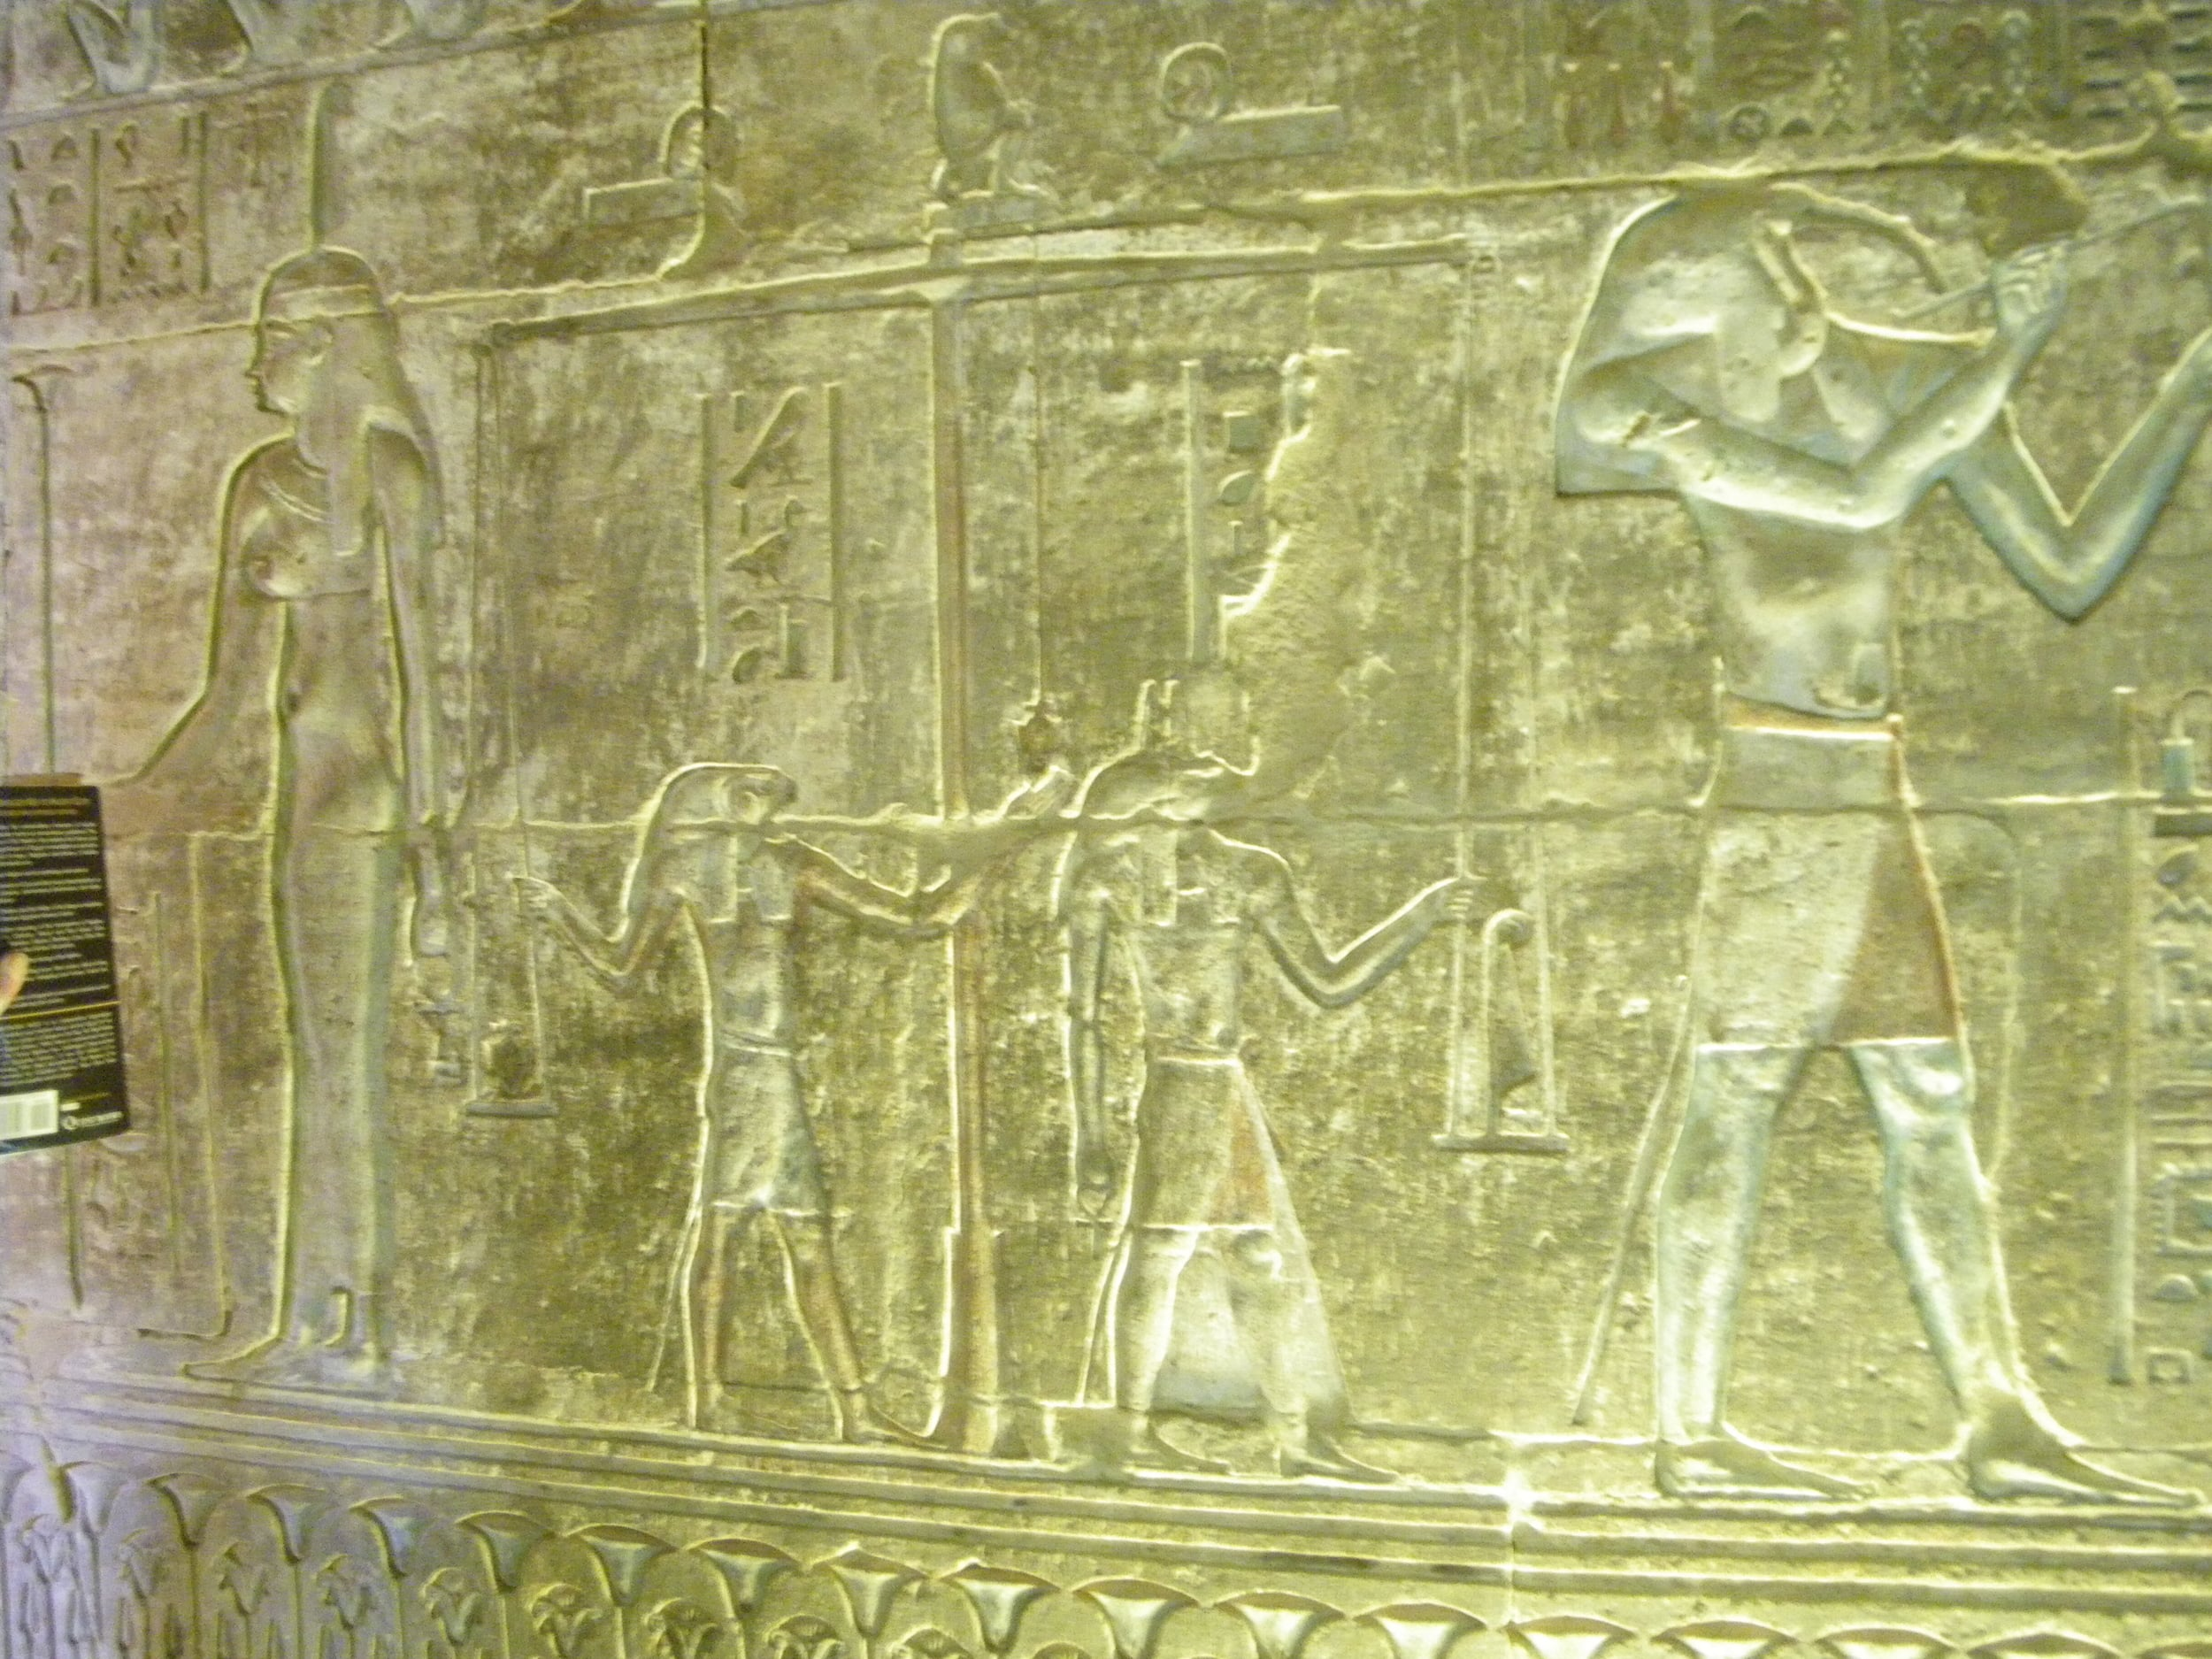 Figure 2. An image of the Weighing of the Heart theme from a Ptolemaic Tomb, Deir el Medinah, Egypt. From left to right are the neters/gods Maat, Horus, Anubis and Djehuty/Thoth. Sitting onto of the scales is a Hamadryas baboon representing Djehuty as A'an the principle of equilibrium.